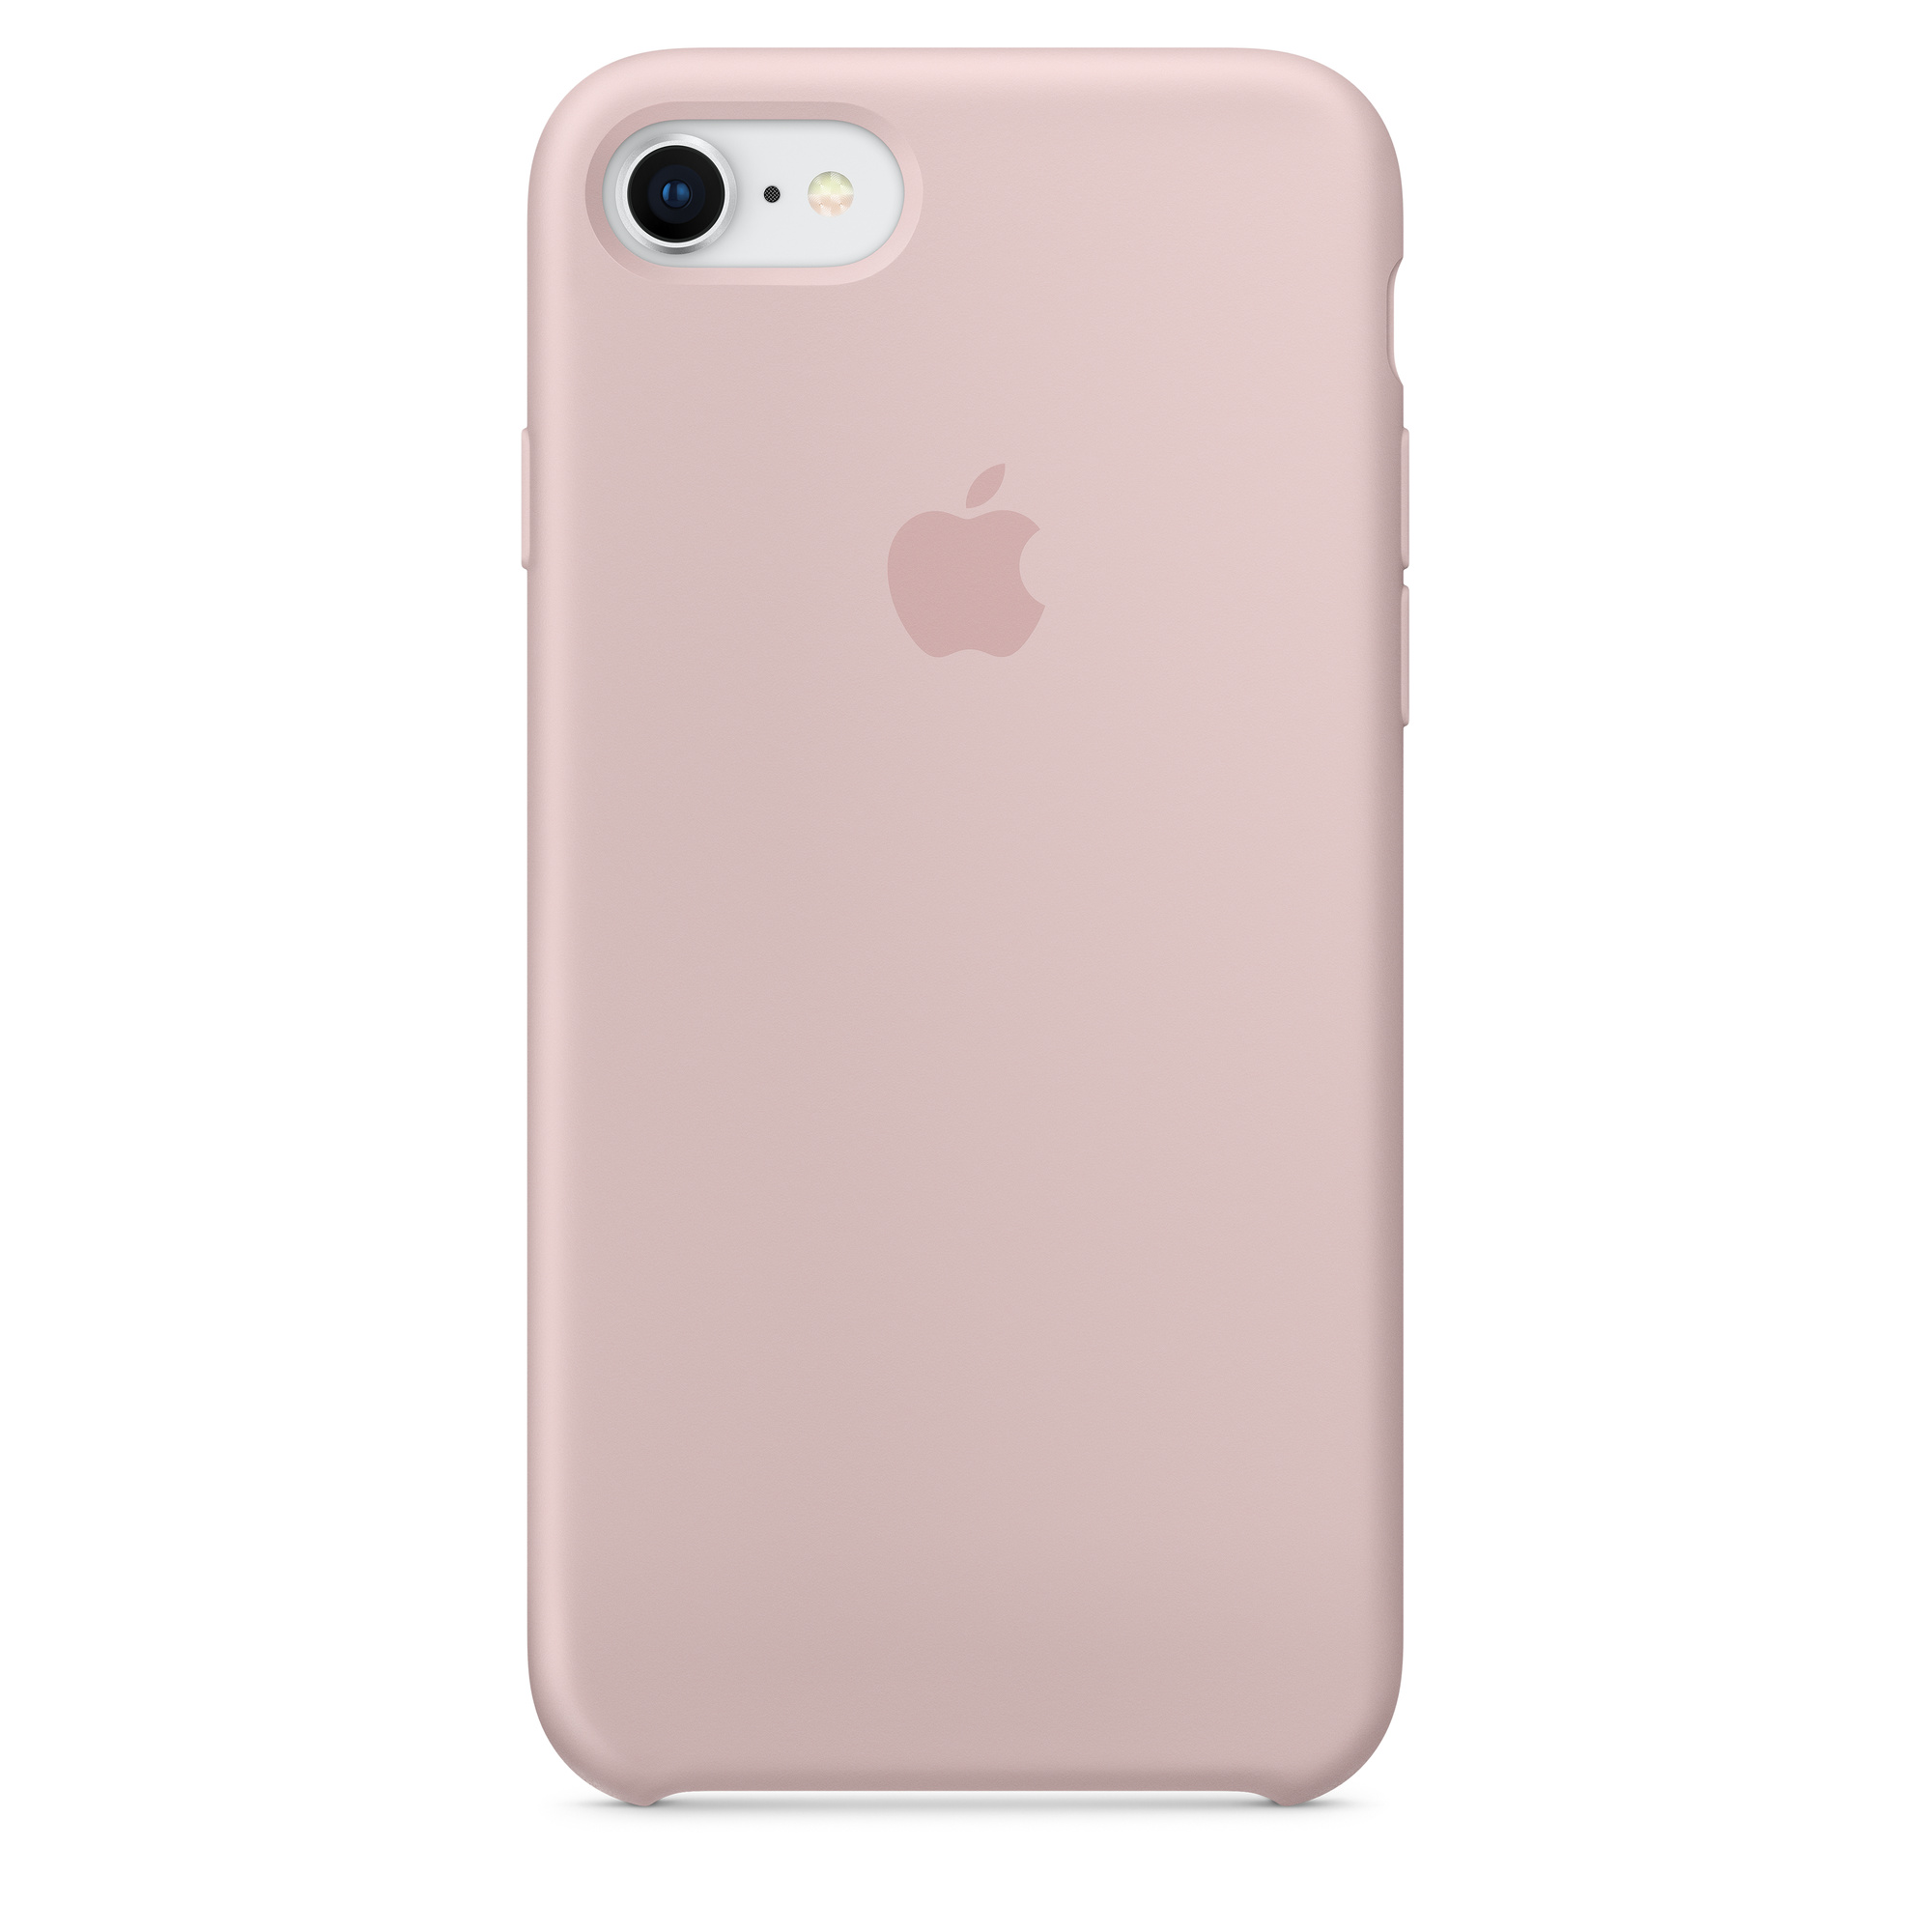 reputable site 6c872 96566 iPhone 8 / 7 Silicone Case - Pink Sand